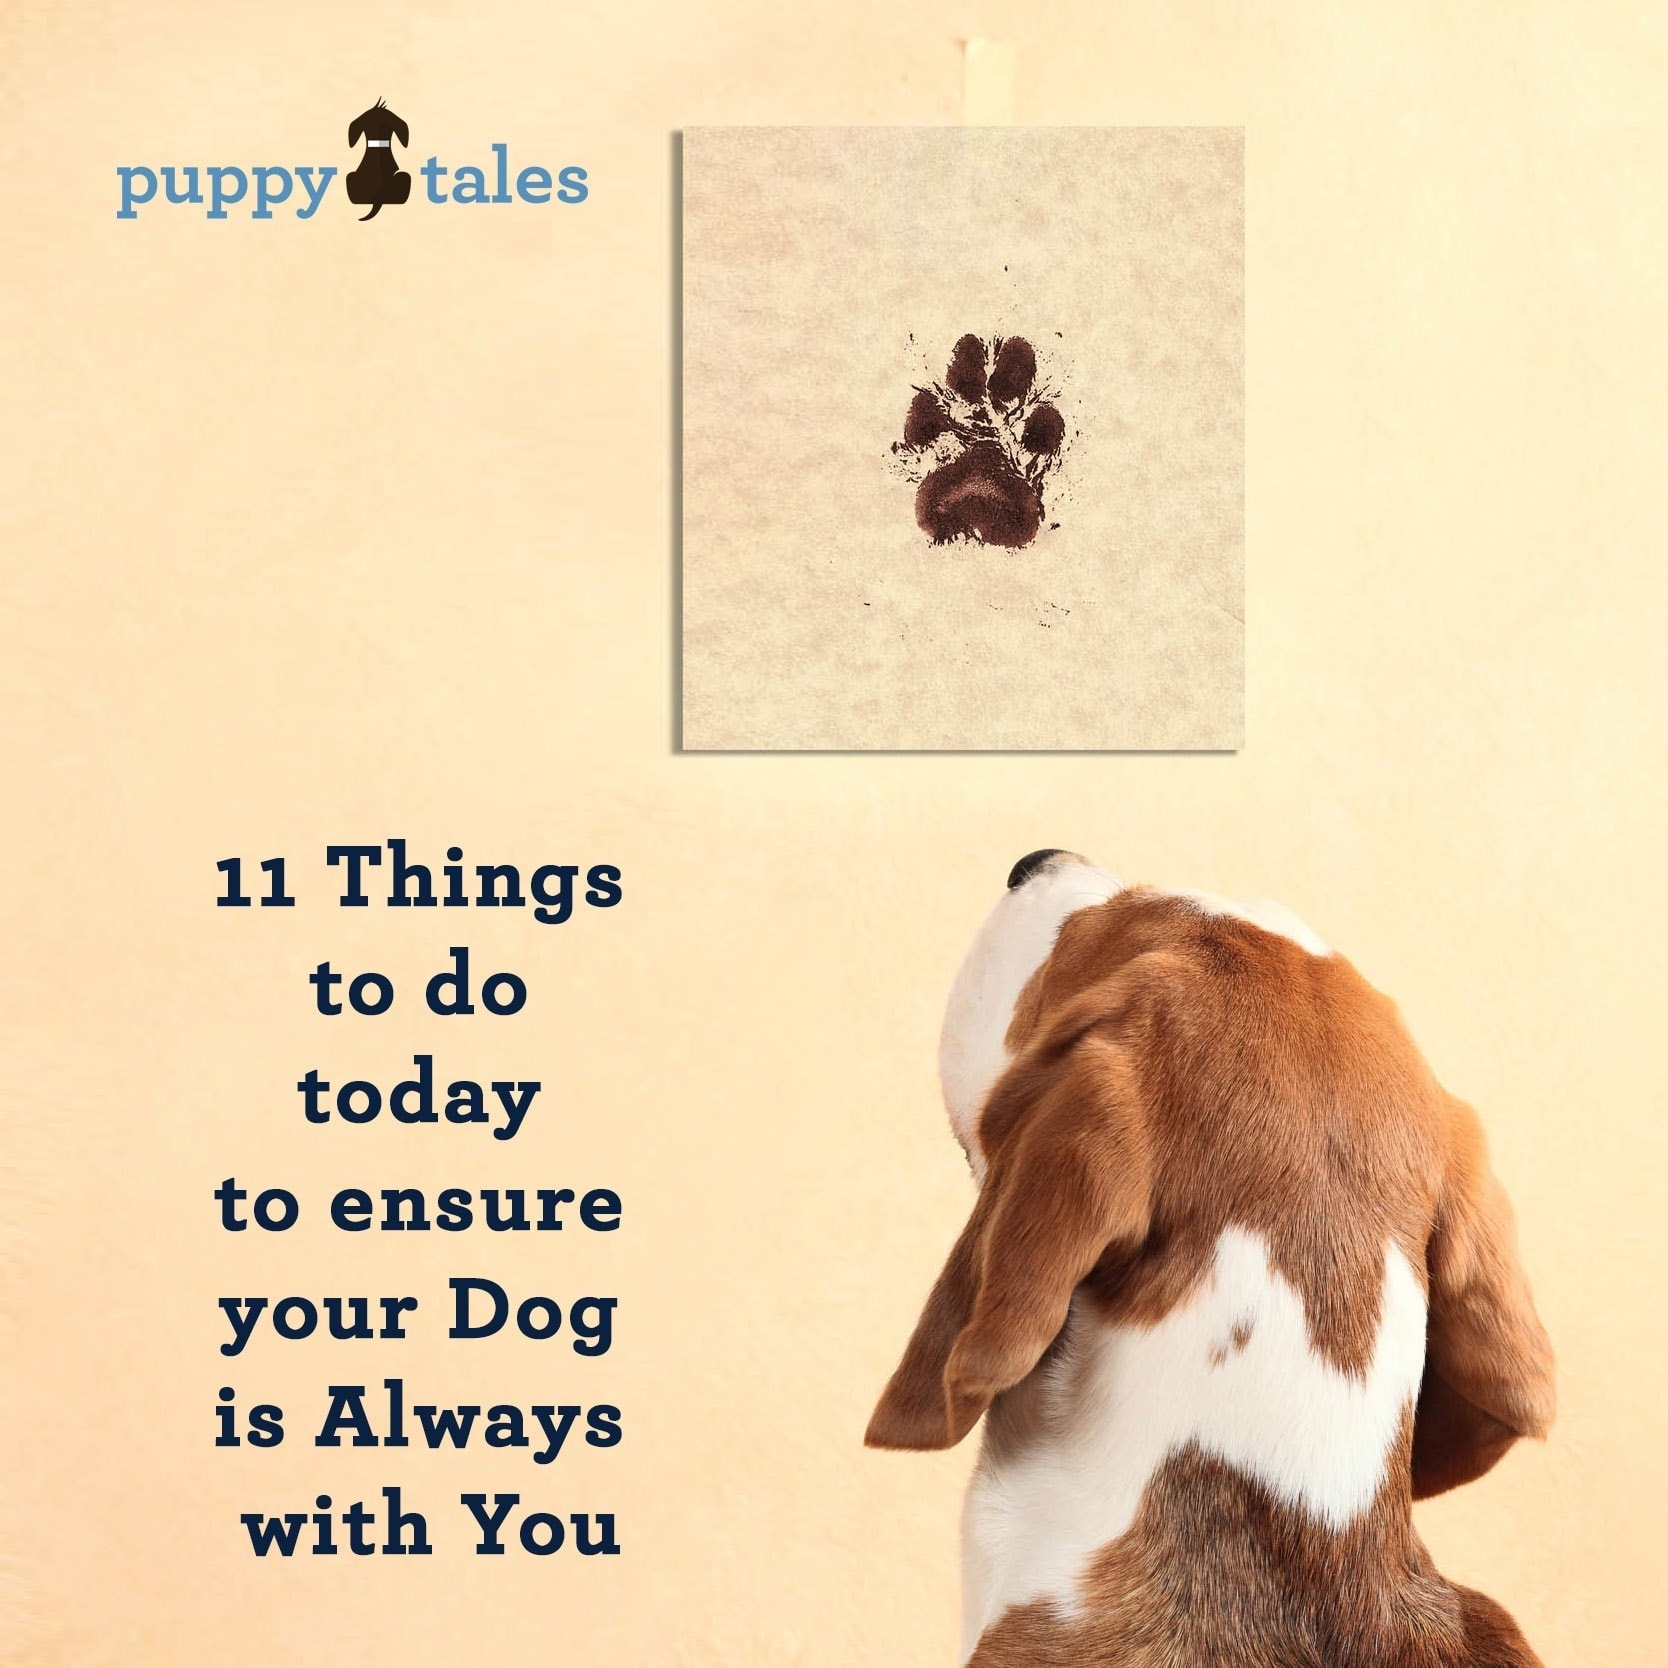 11 Things to do today to ensure your dog is always with you